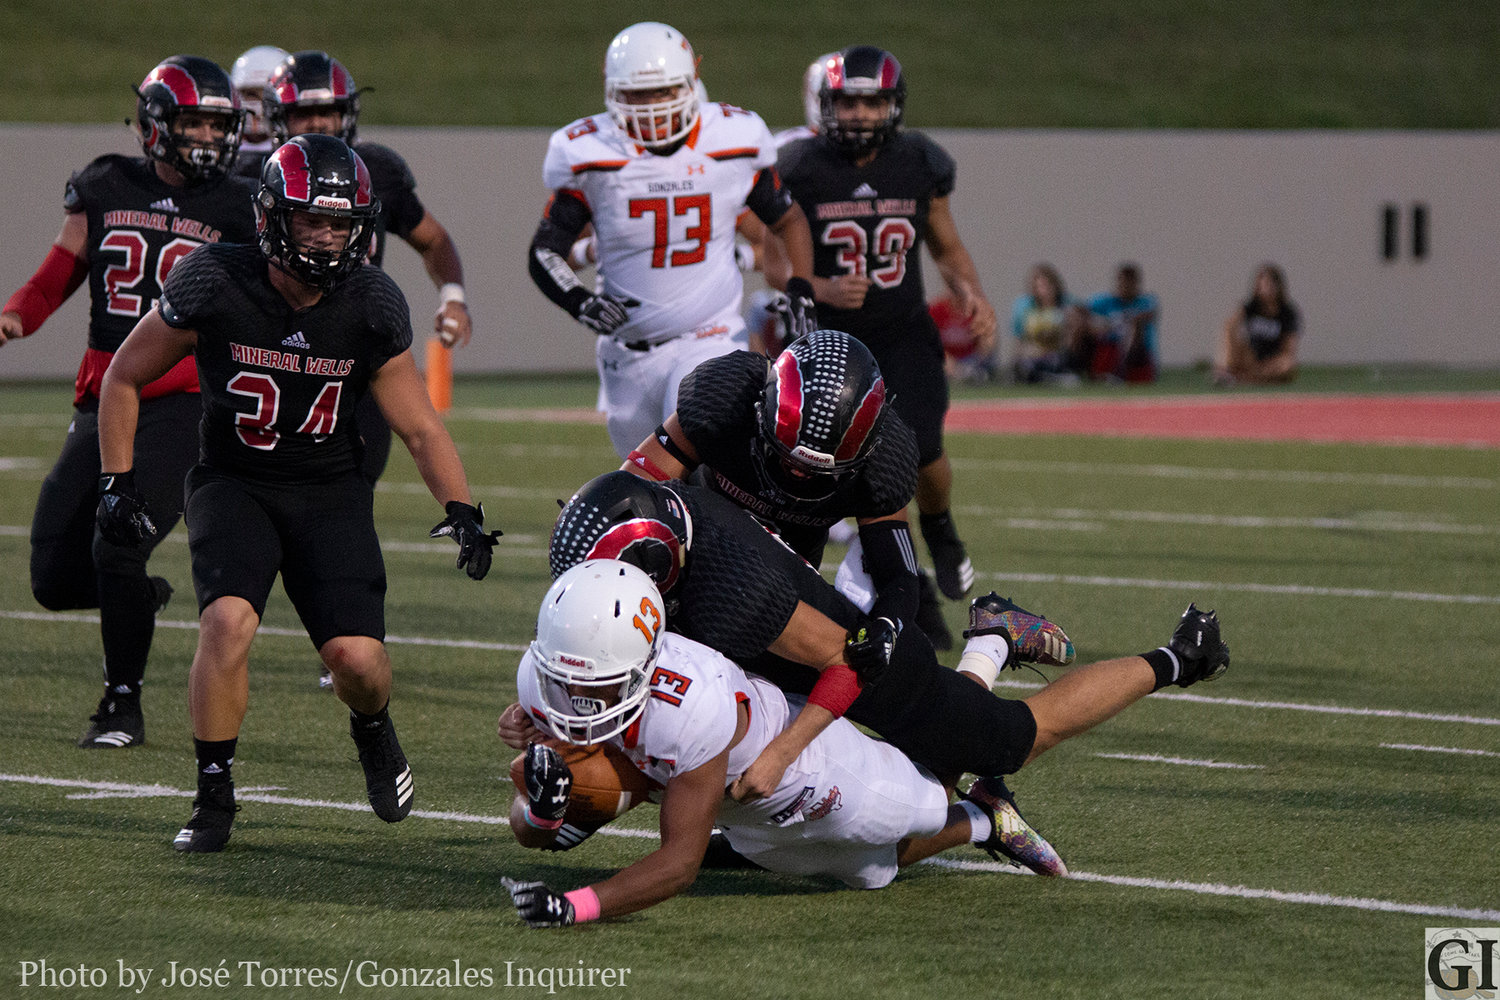 James Martinez (13) gets tackled in the open field in Gonzales' 38-21 loss against Mineral Wells